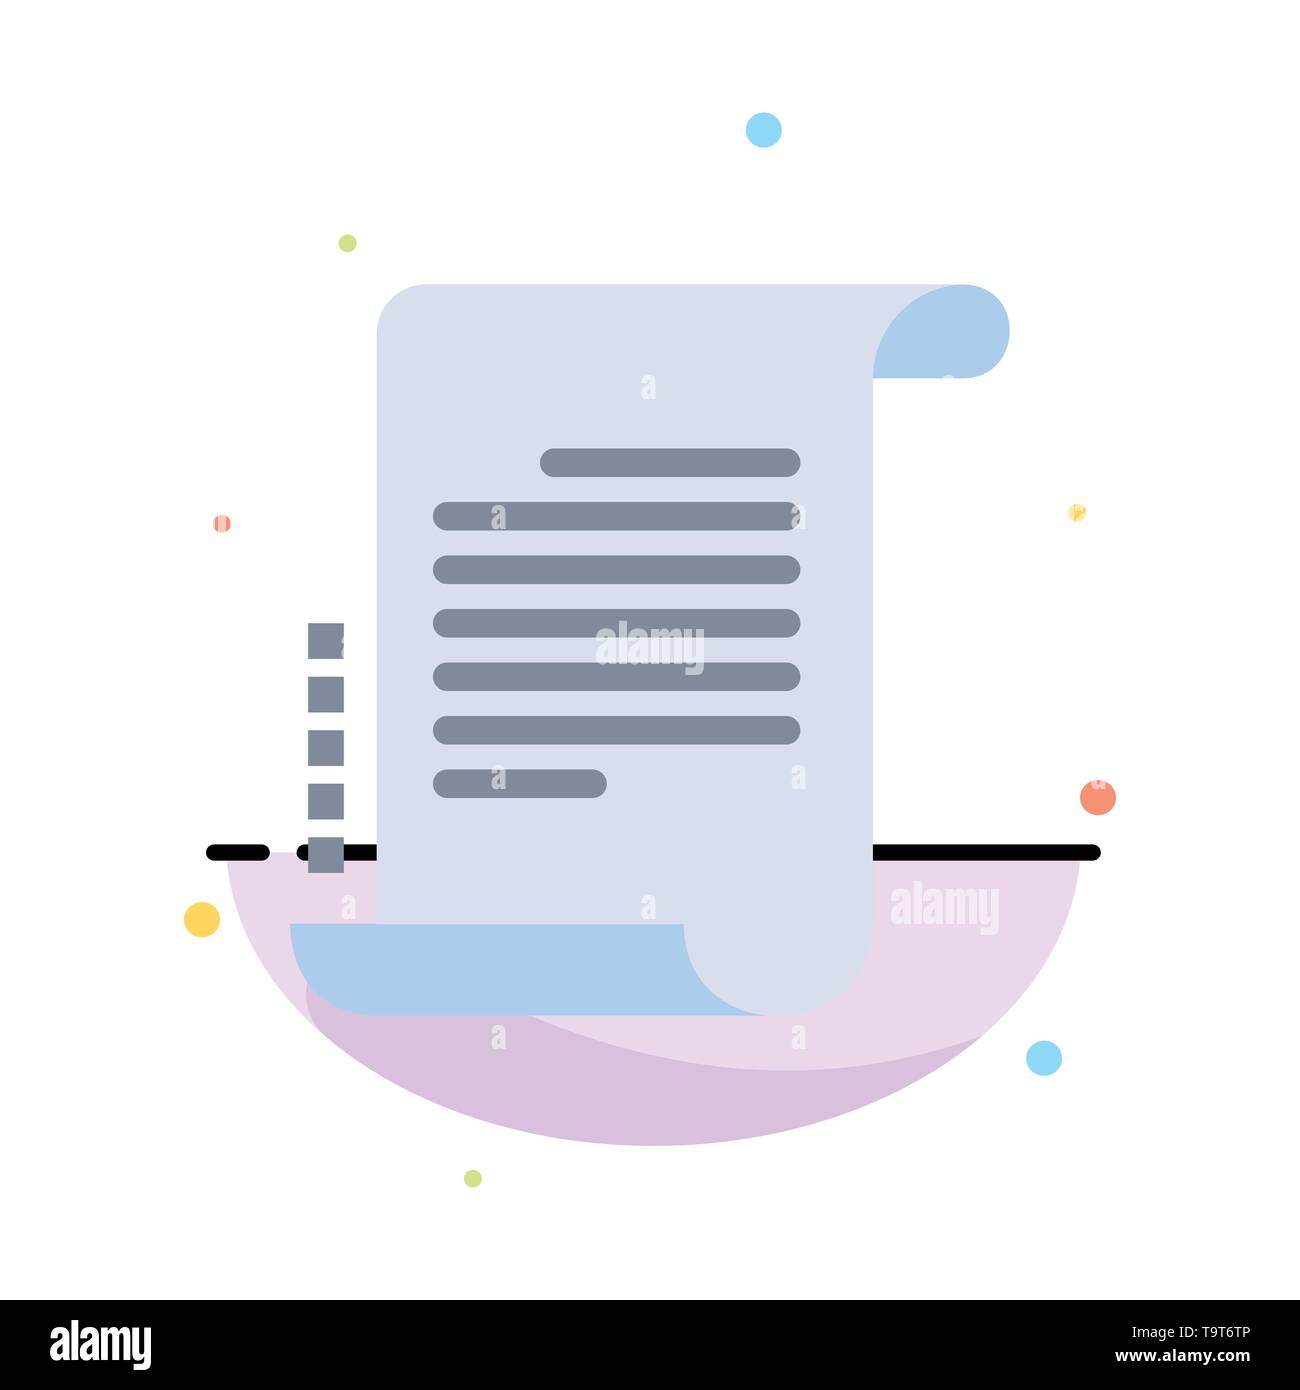 Decree, Novel, Scenario, Screenplay Abstract Flat Color Icon Template - Stock Image